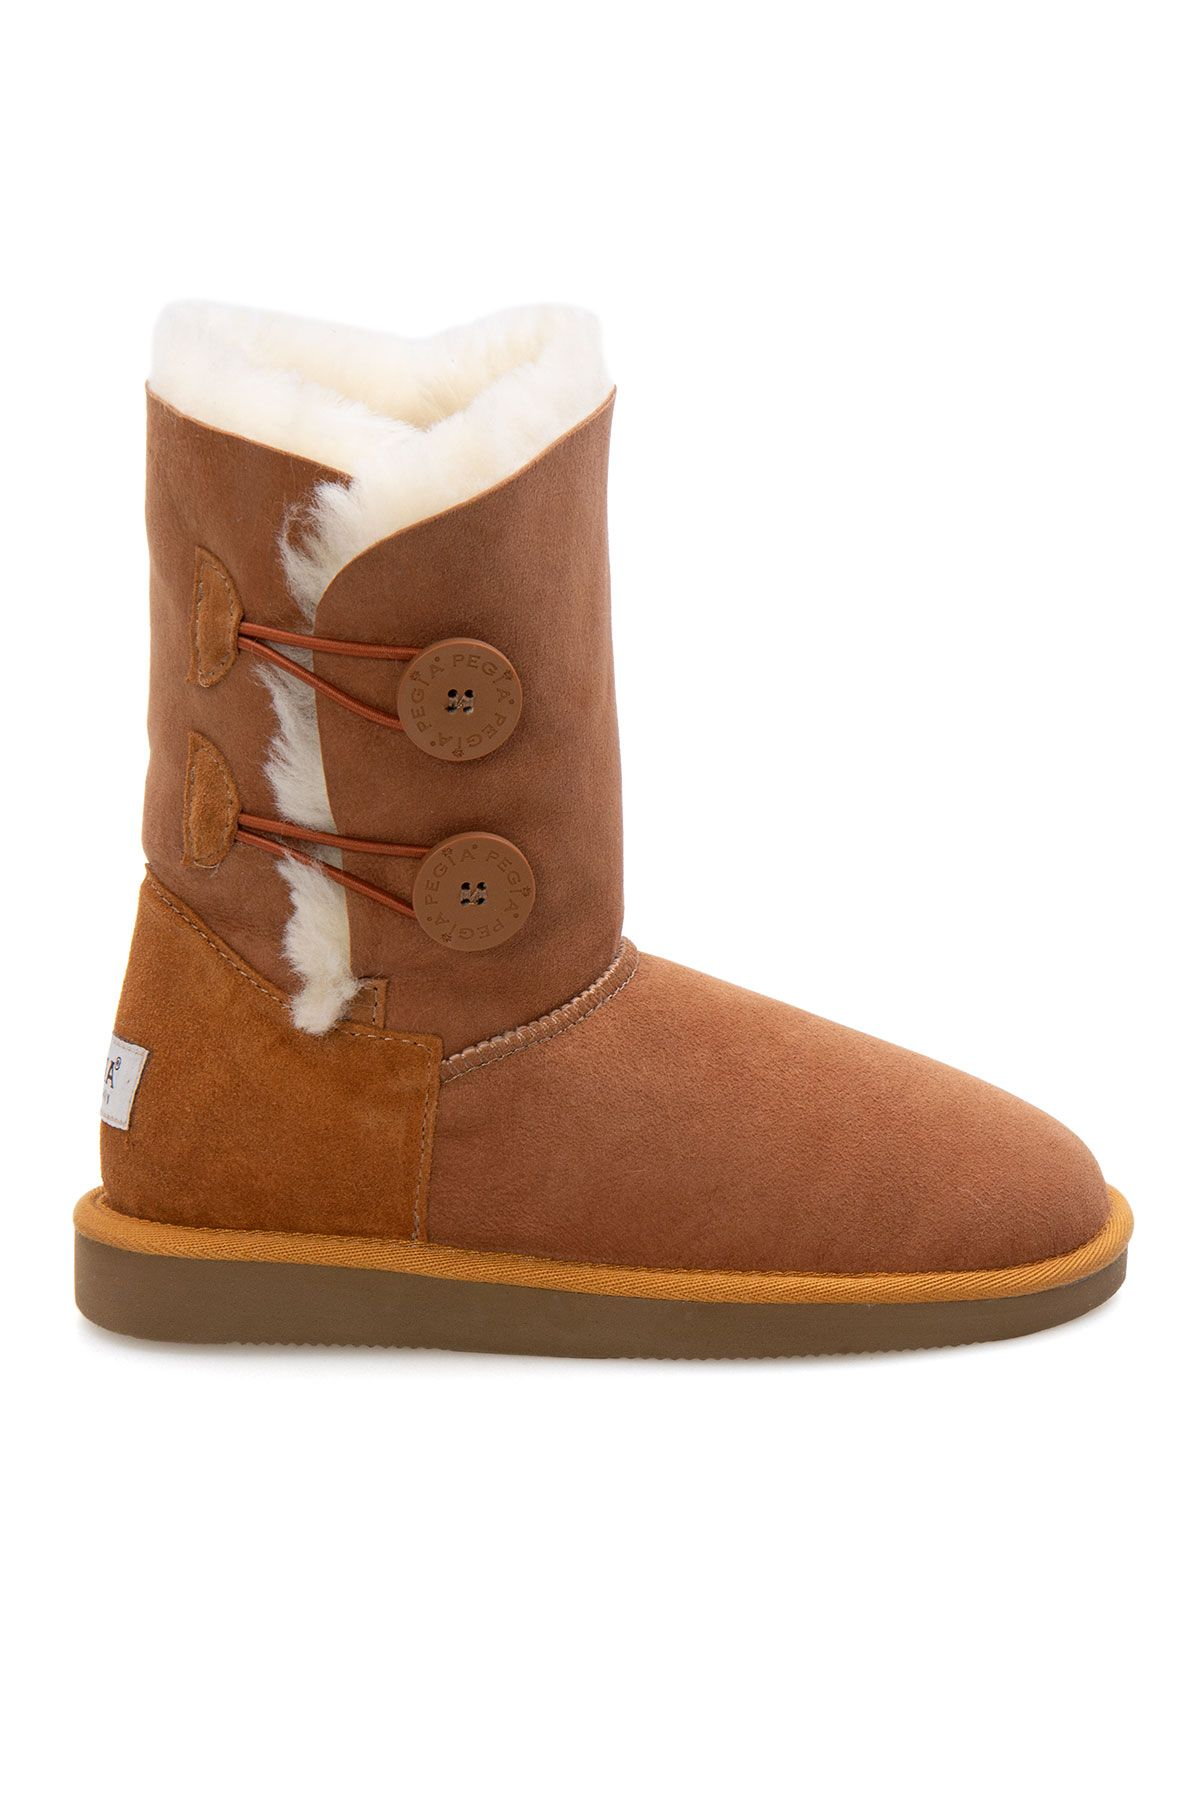 Pegia Women Boots From Genuine Suede And Sheepskin Fur Decorated With Snaps Ginger